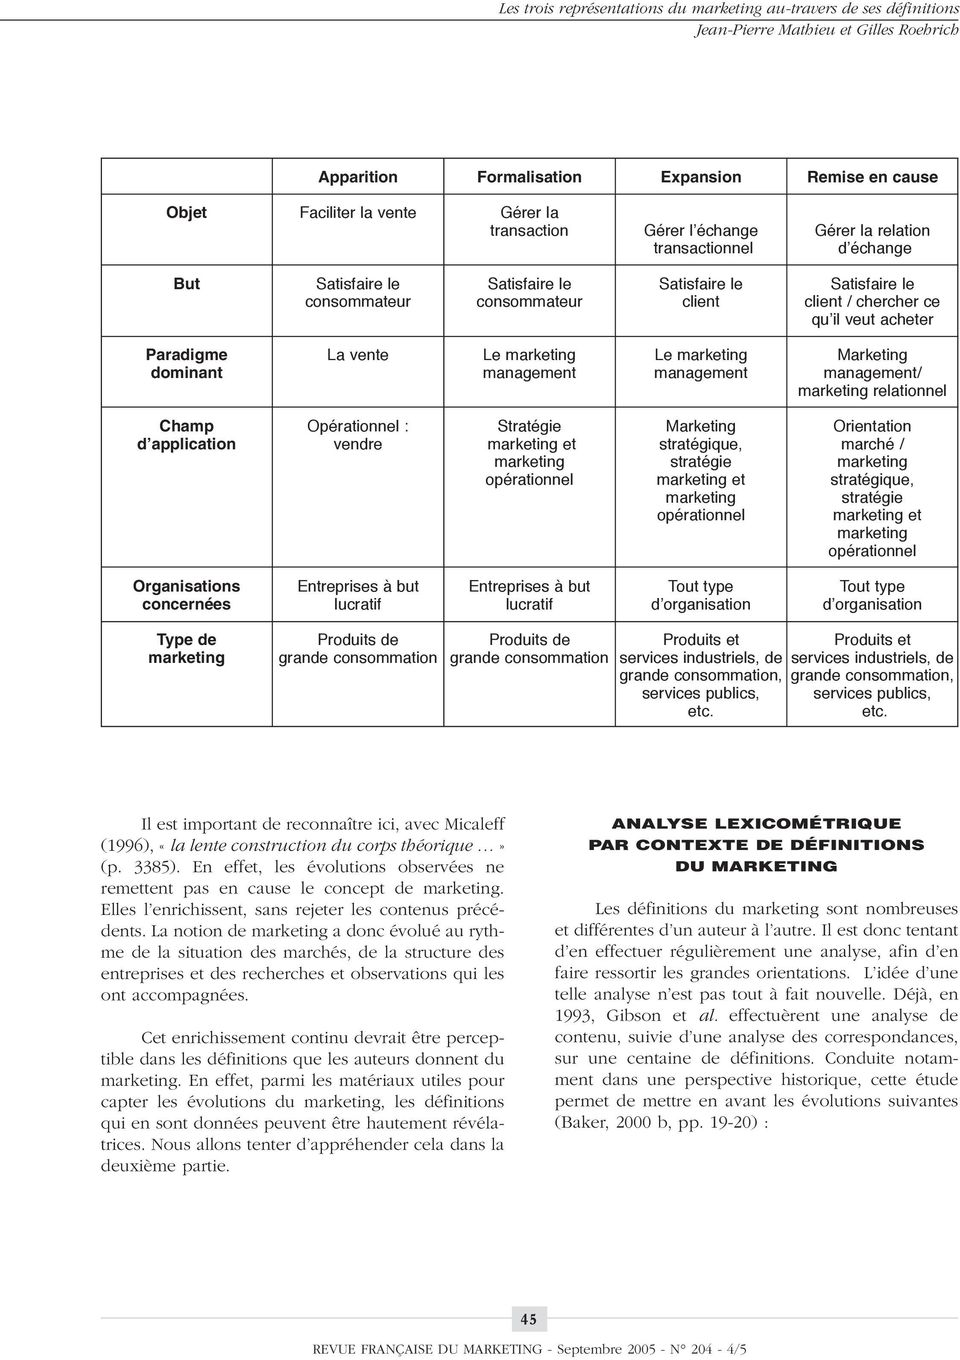 acheter Paradigme La vente Le marketing Le marketing Marketing dominant management management management/ marketing relationnel Champ Opérationnel : Stratégie Marketing Orientation d application